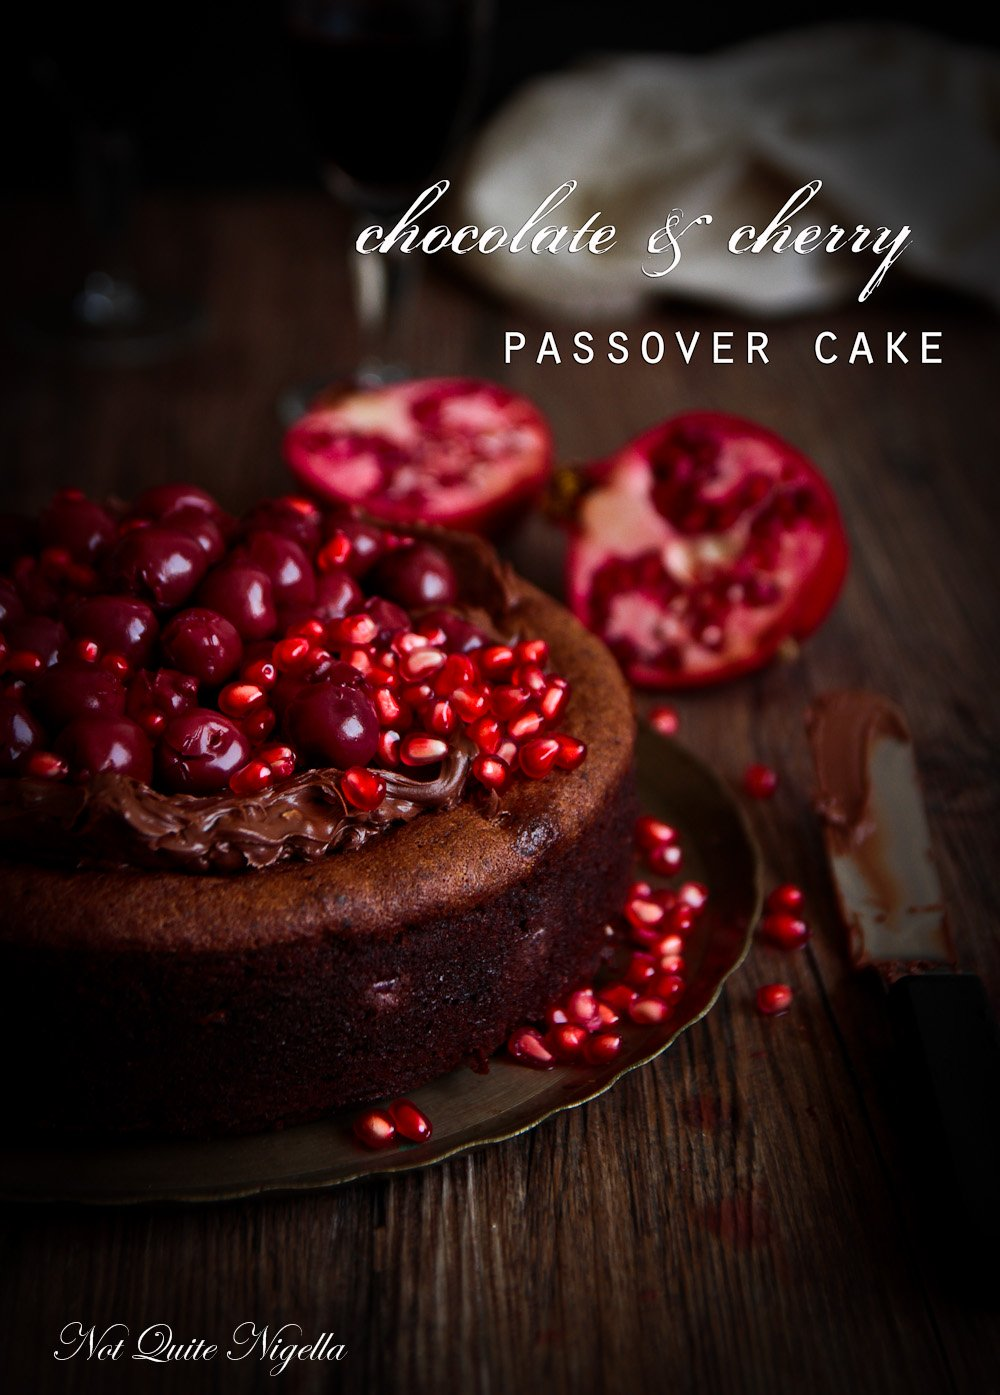 Flourless Chocolate Cherry Cake Passover